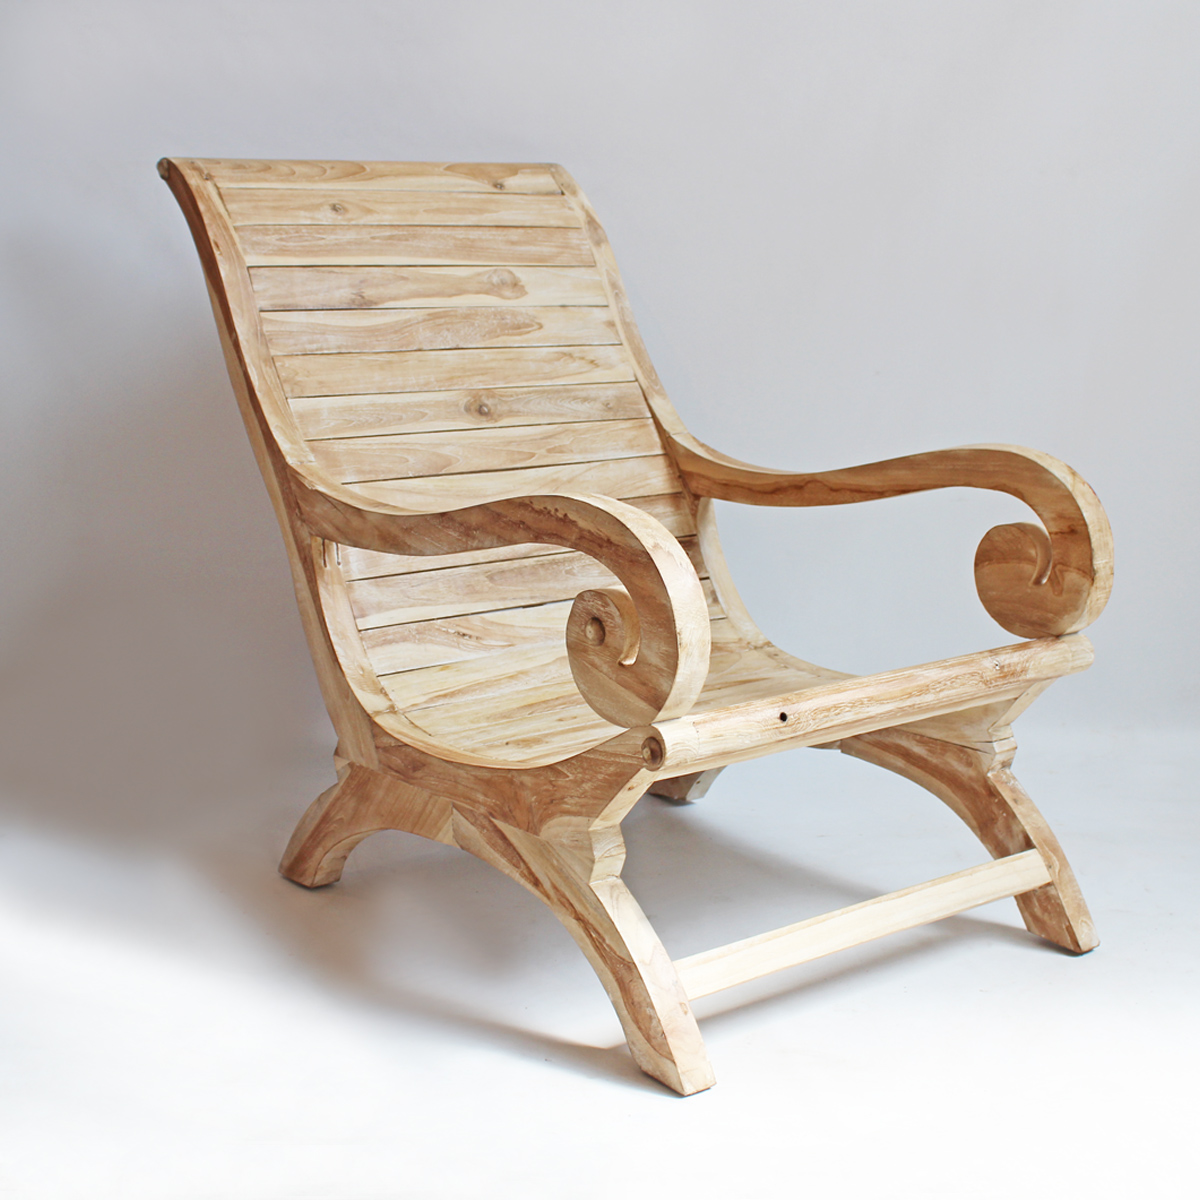 wooden lounge chair plans boon high green teak wood furniture mix